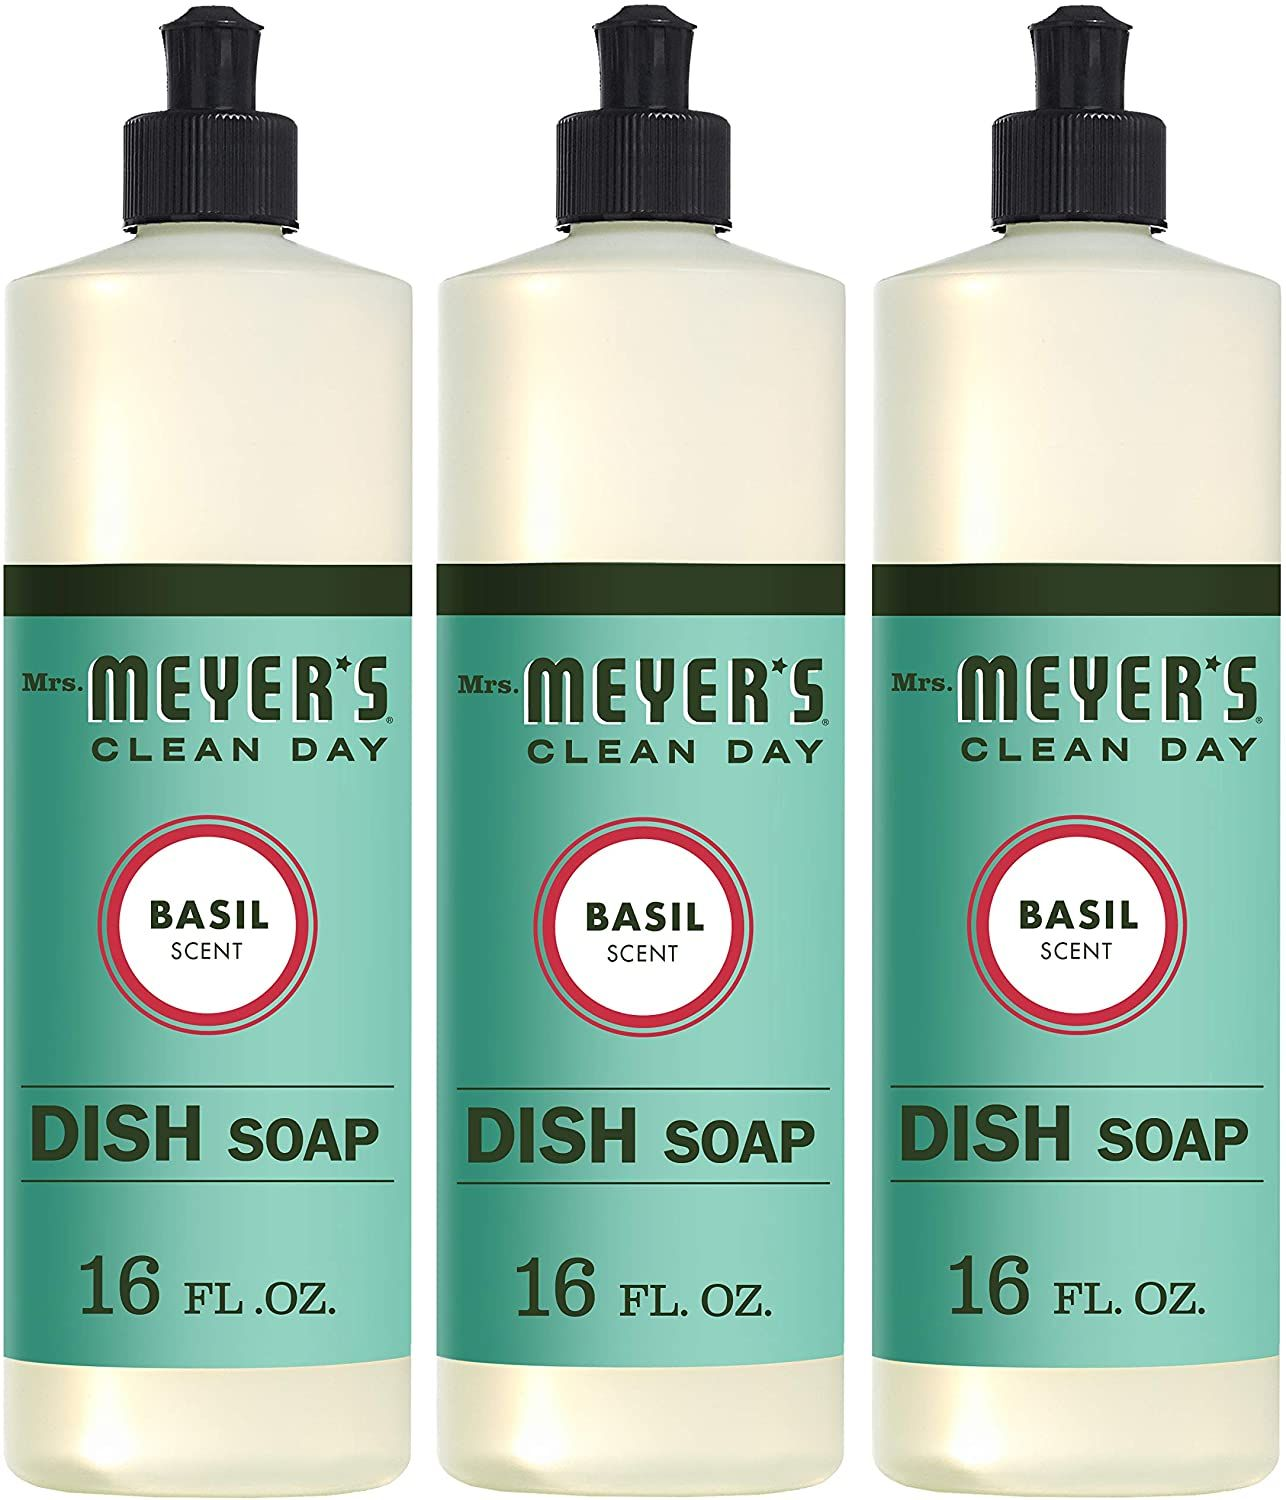 Mrs Meyer S Clean Day Liquid Dish Soap In 2020 Cleaning Day Liquid Dish Soap Biodegradable Products